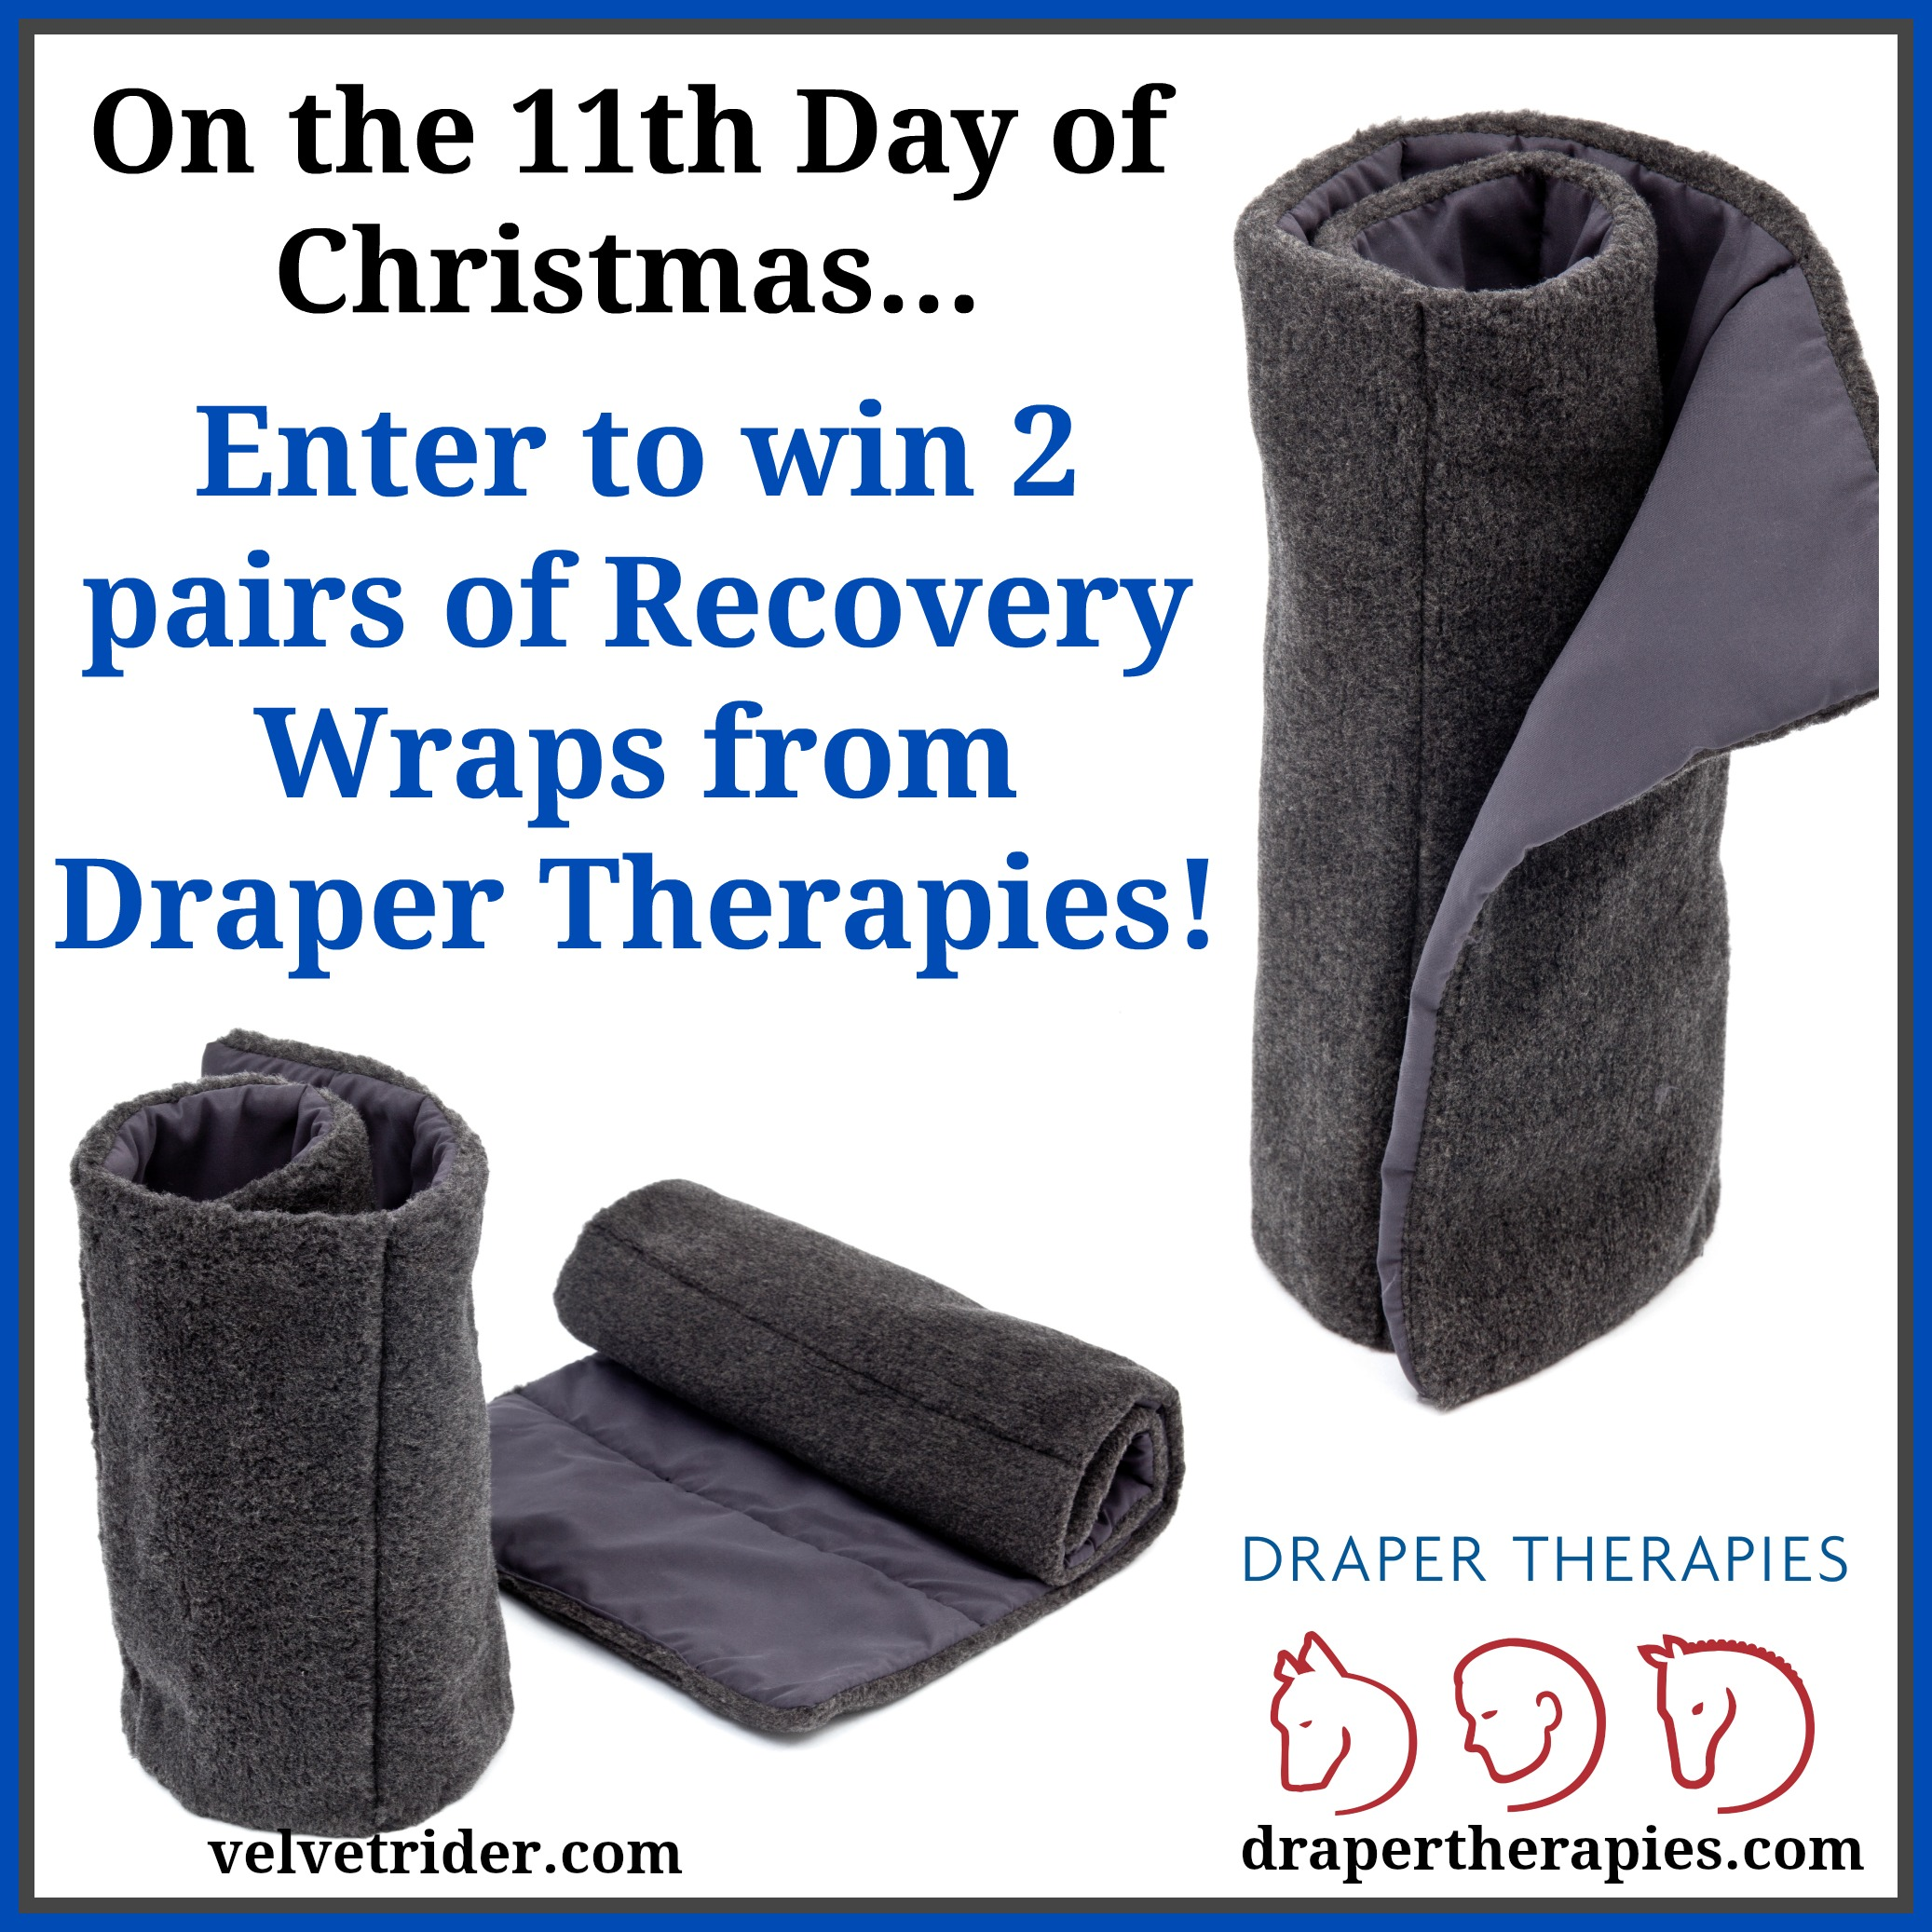 VR_12Days_DraperTherapies